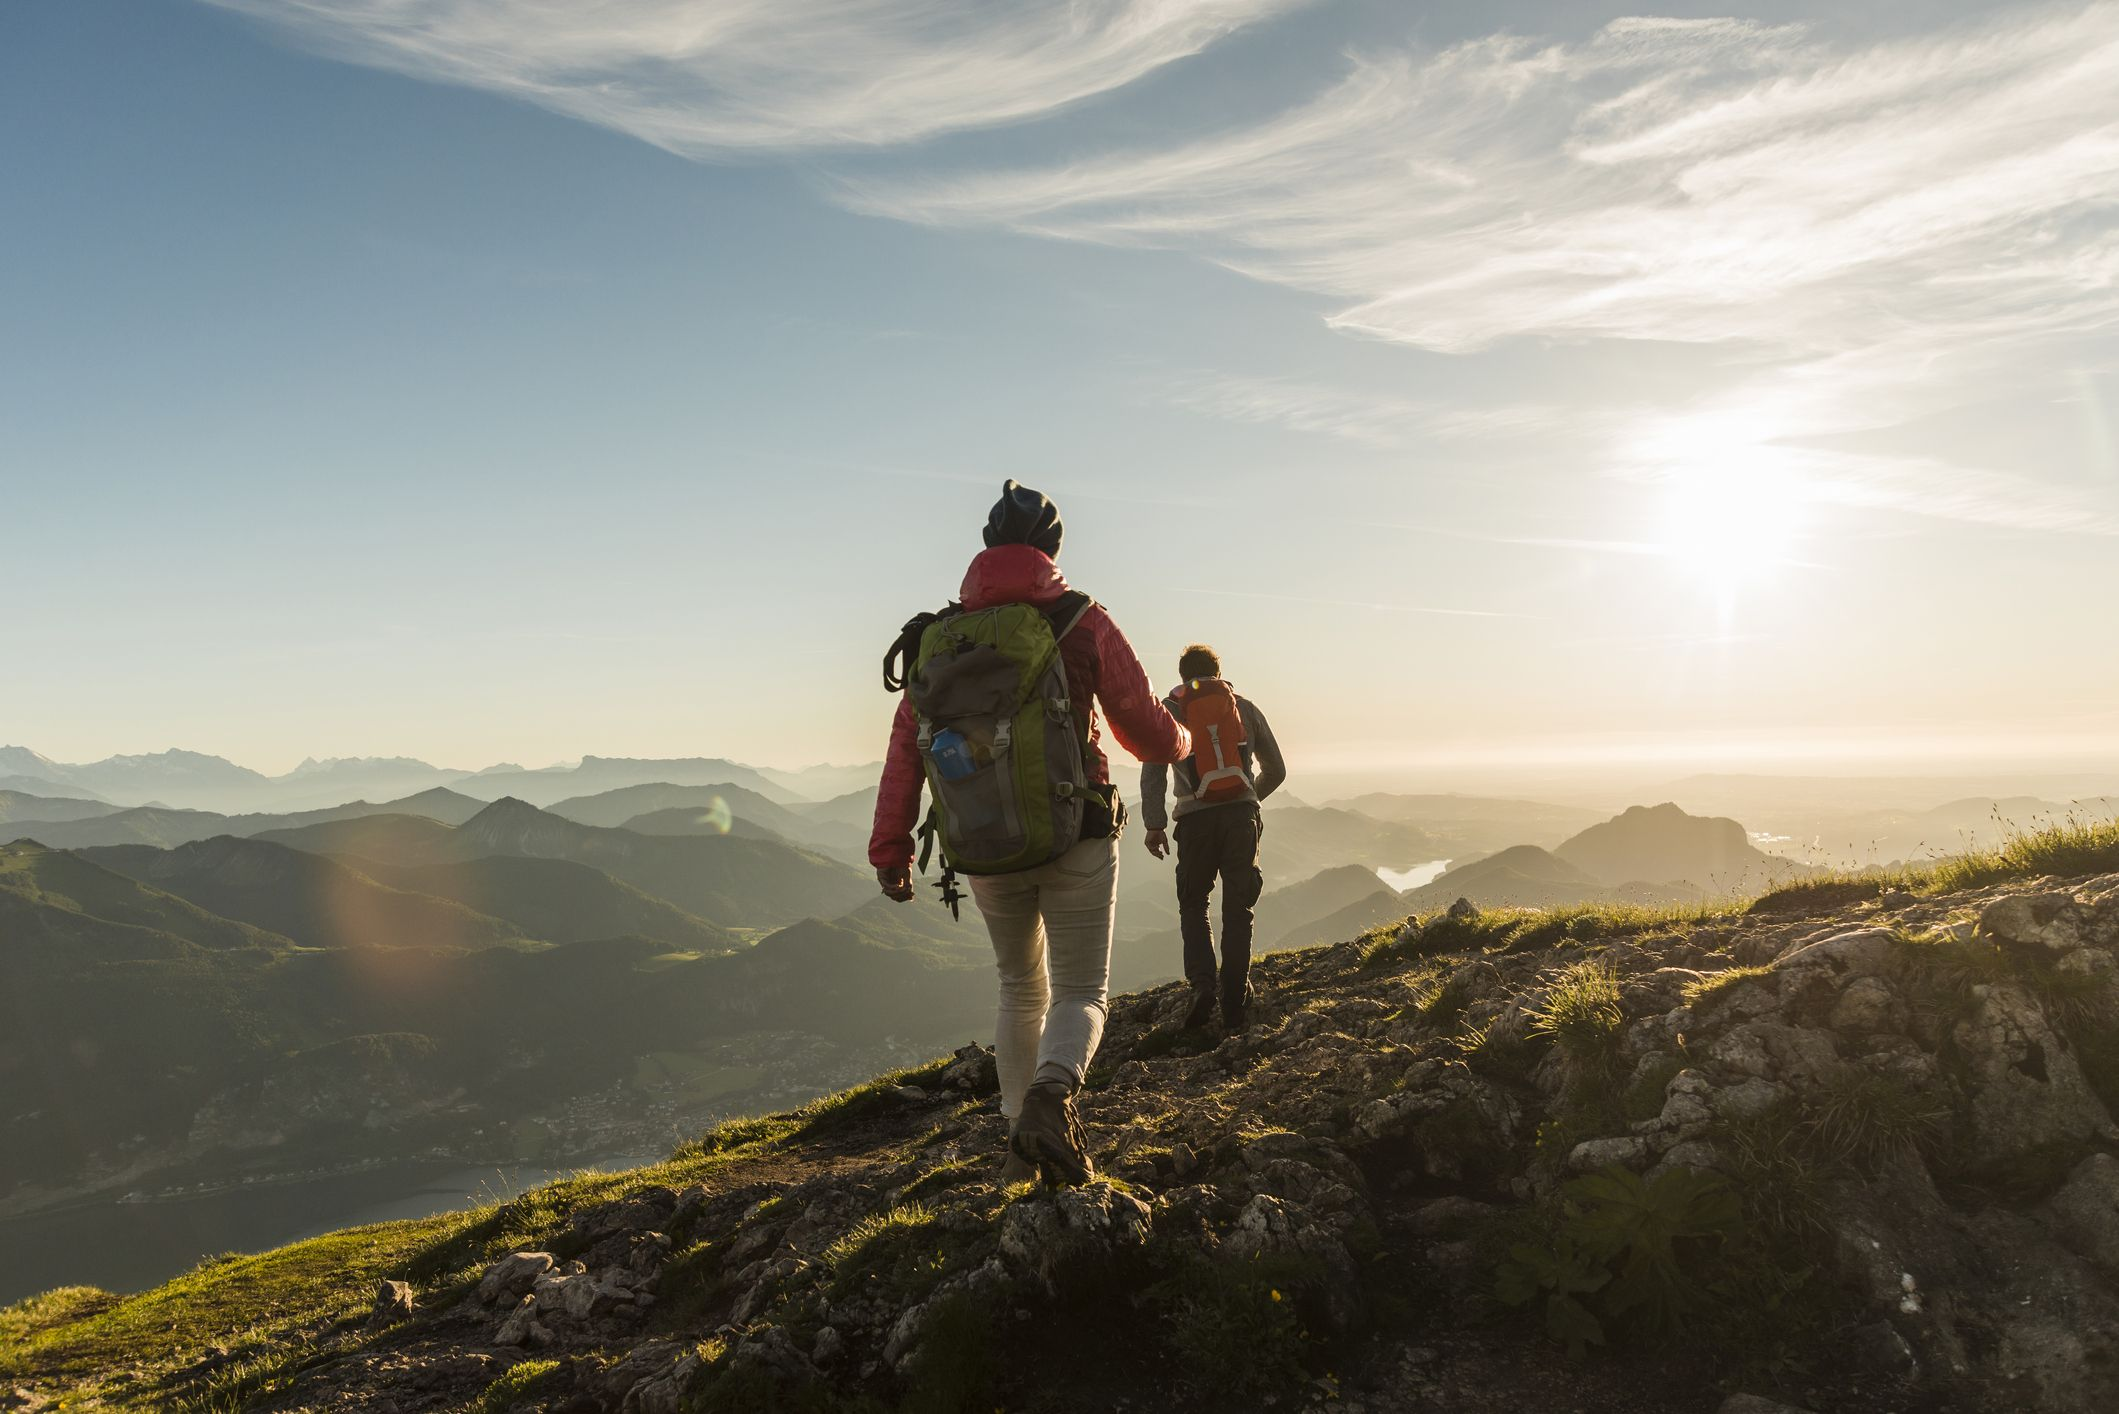 25 Inspirational Hiking Quotes - Best Sayings About Walking in Nature